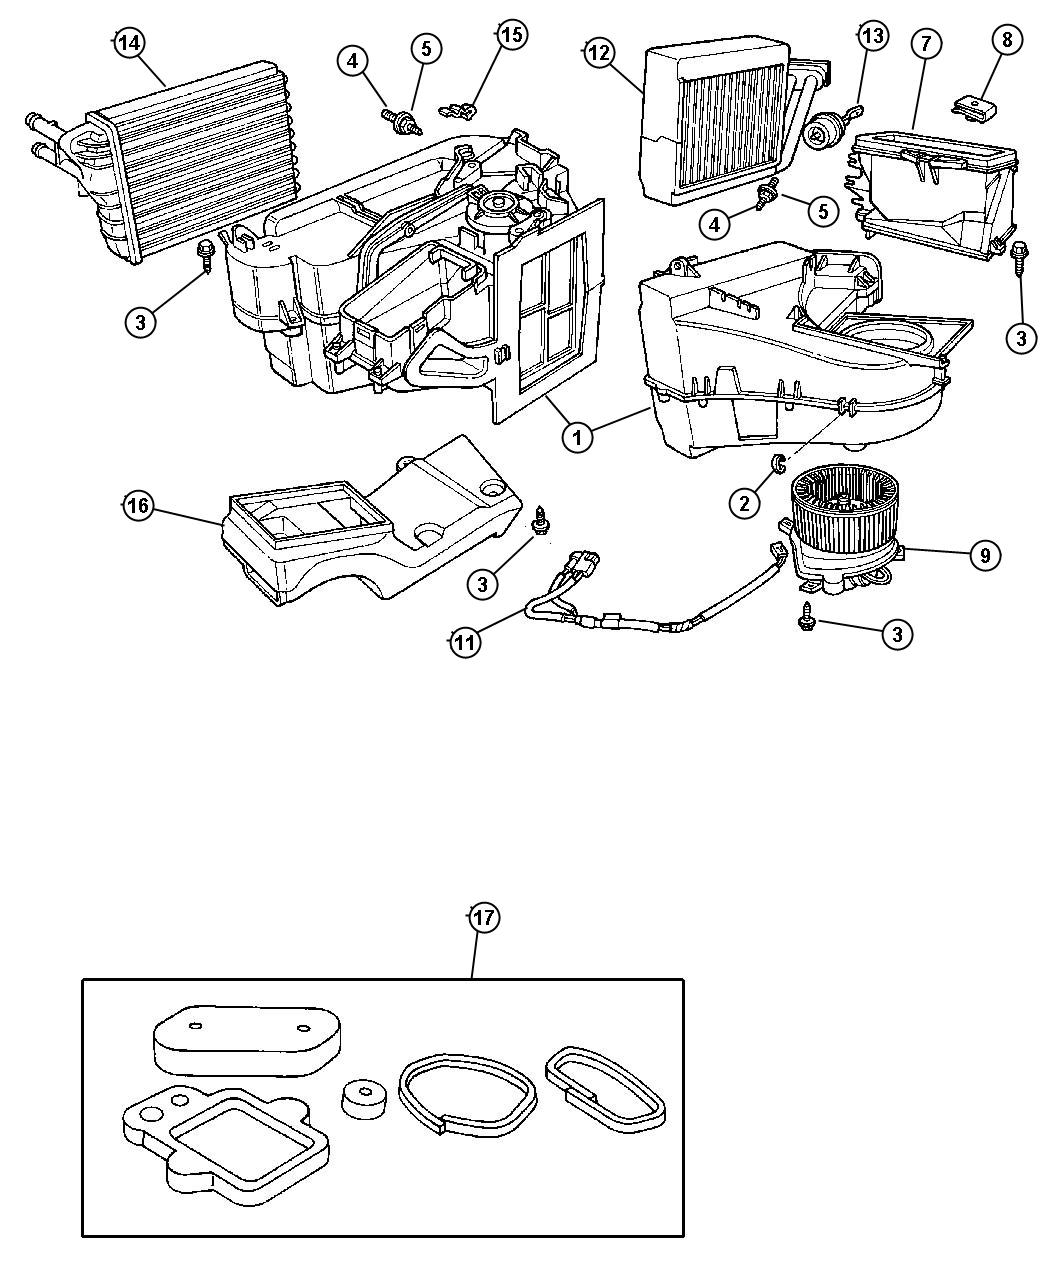 2005 Dodge Neon Seal kit. Used for: a/c and heater unit